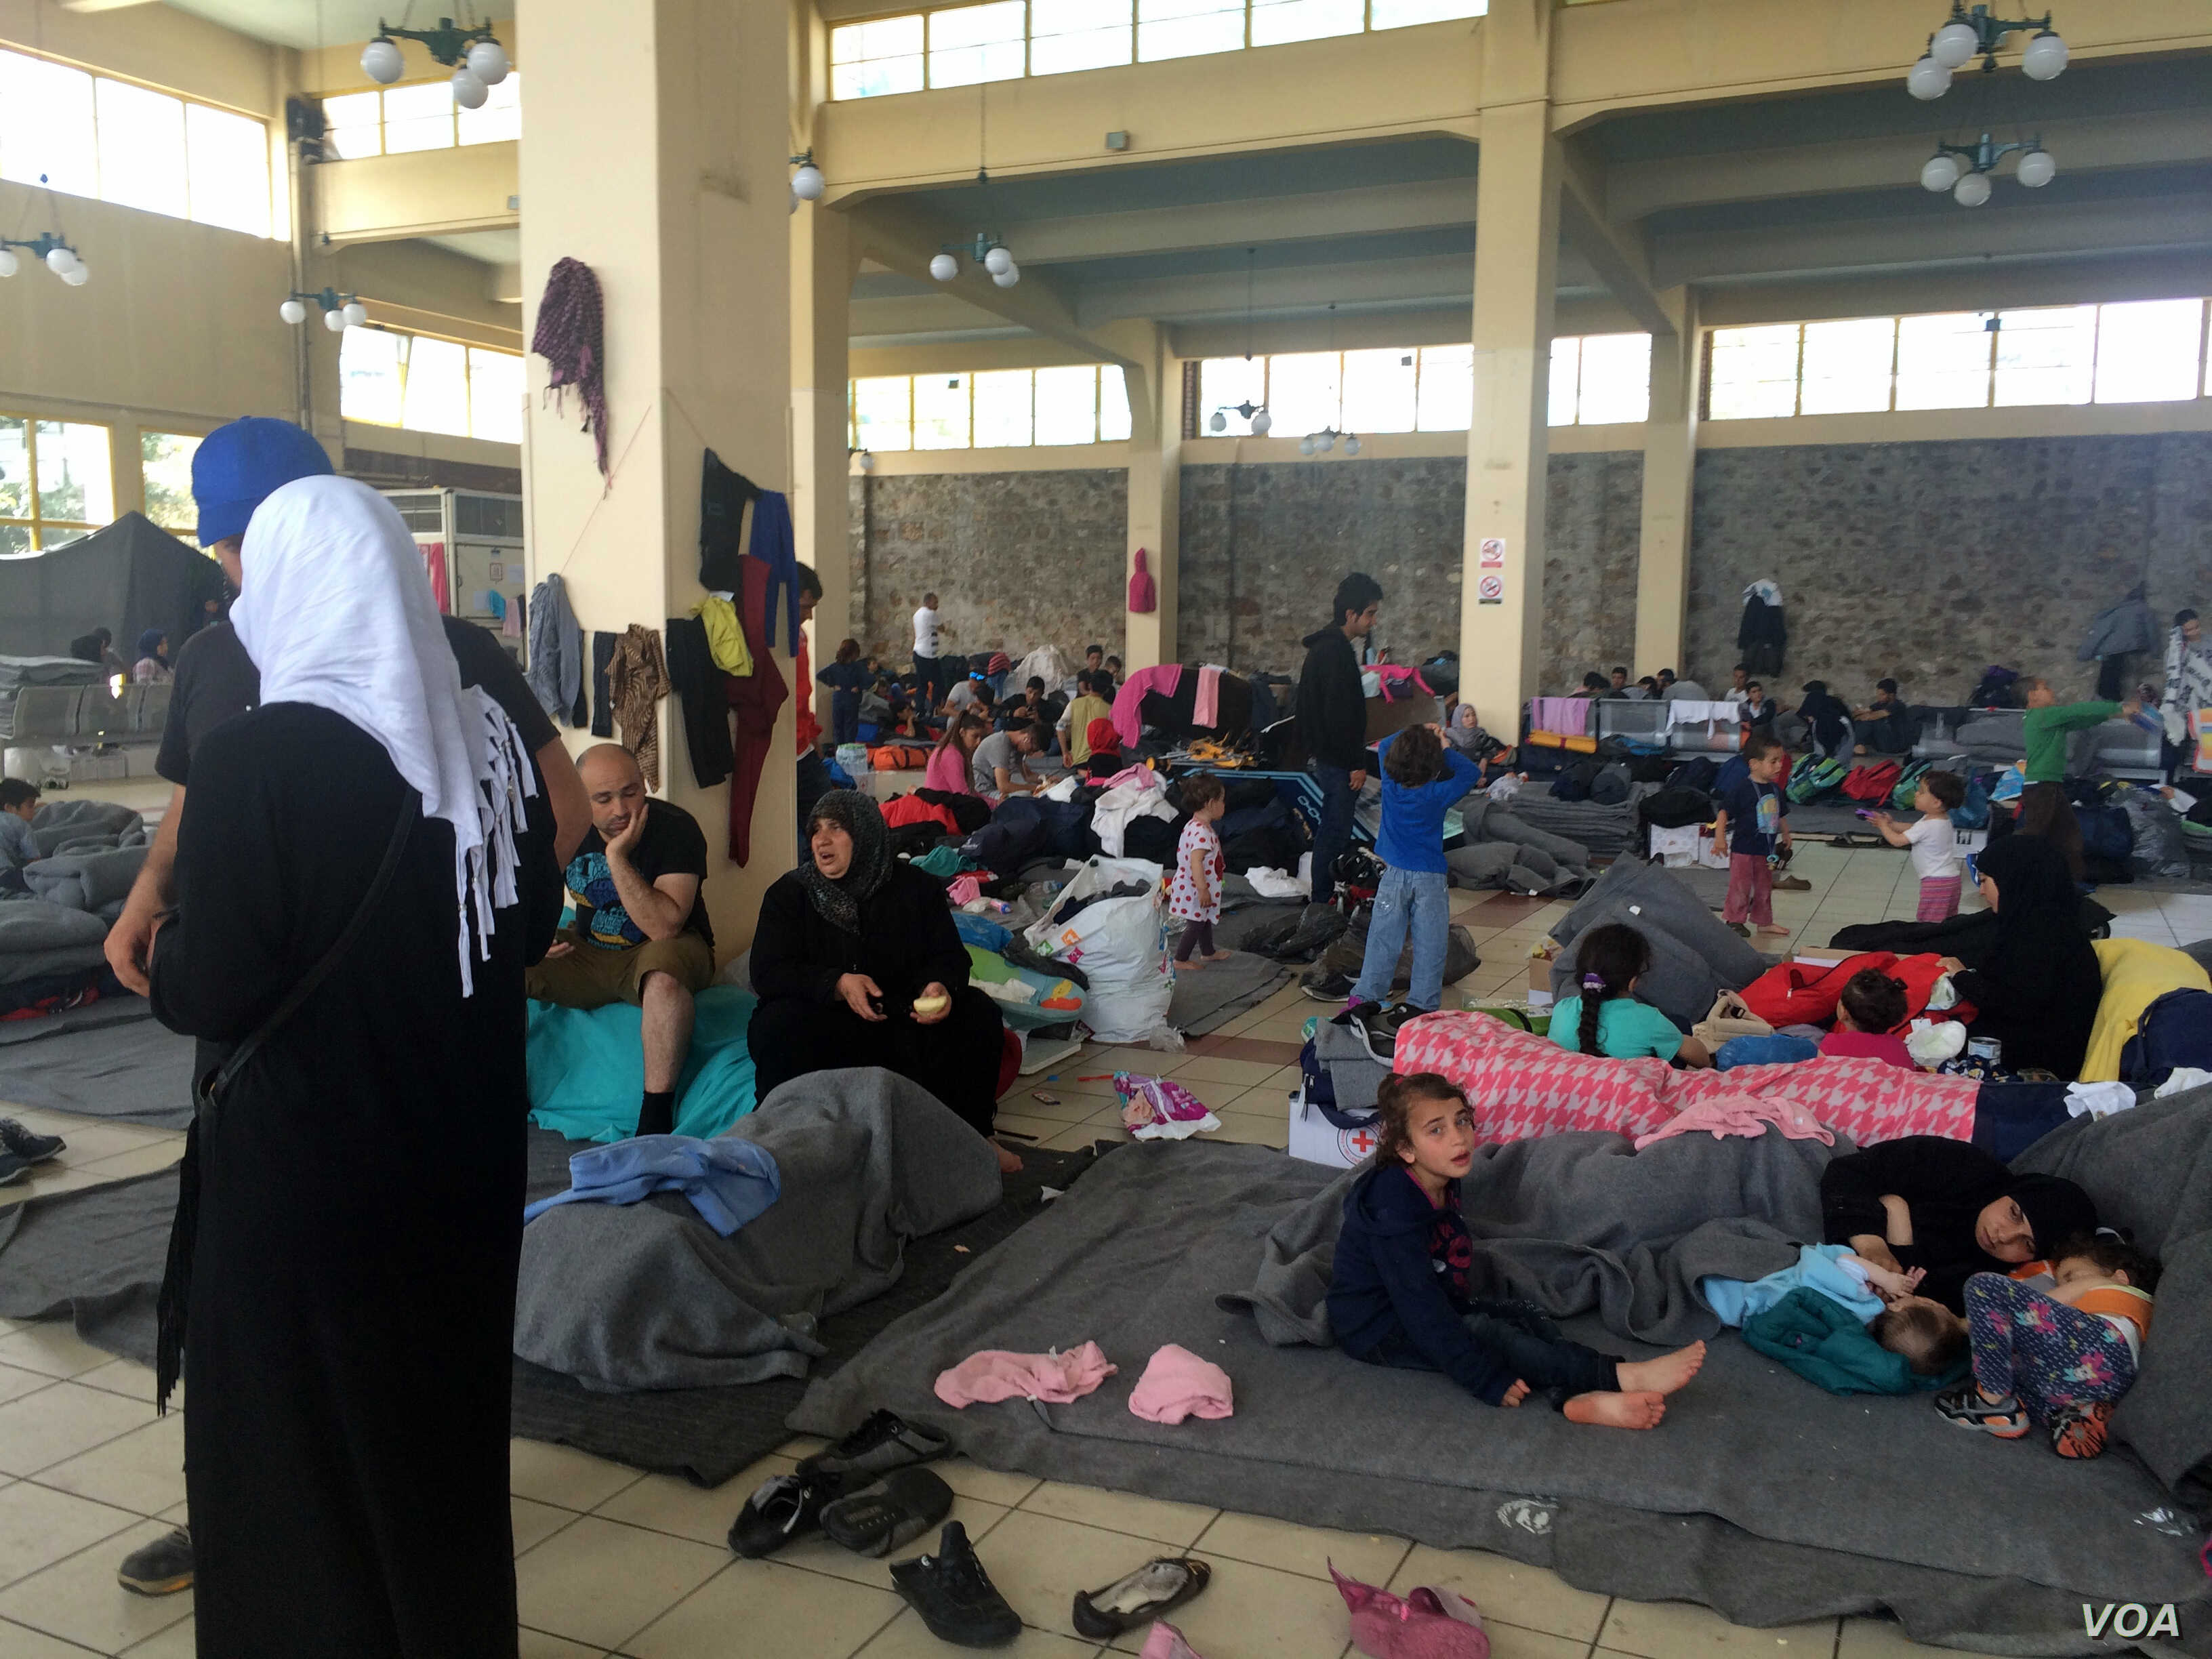 While most people camped out on Athens' Piraeus port sleep in plastic tents outside, some families with small children bunk in this port station, in increasingly unsanitary conditions in Athens, Greece on April, 8, 2016. (H. Murdock / VOA)